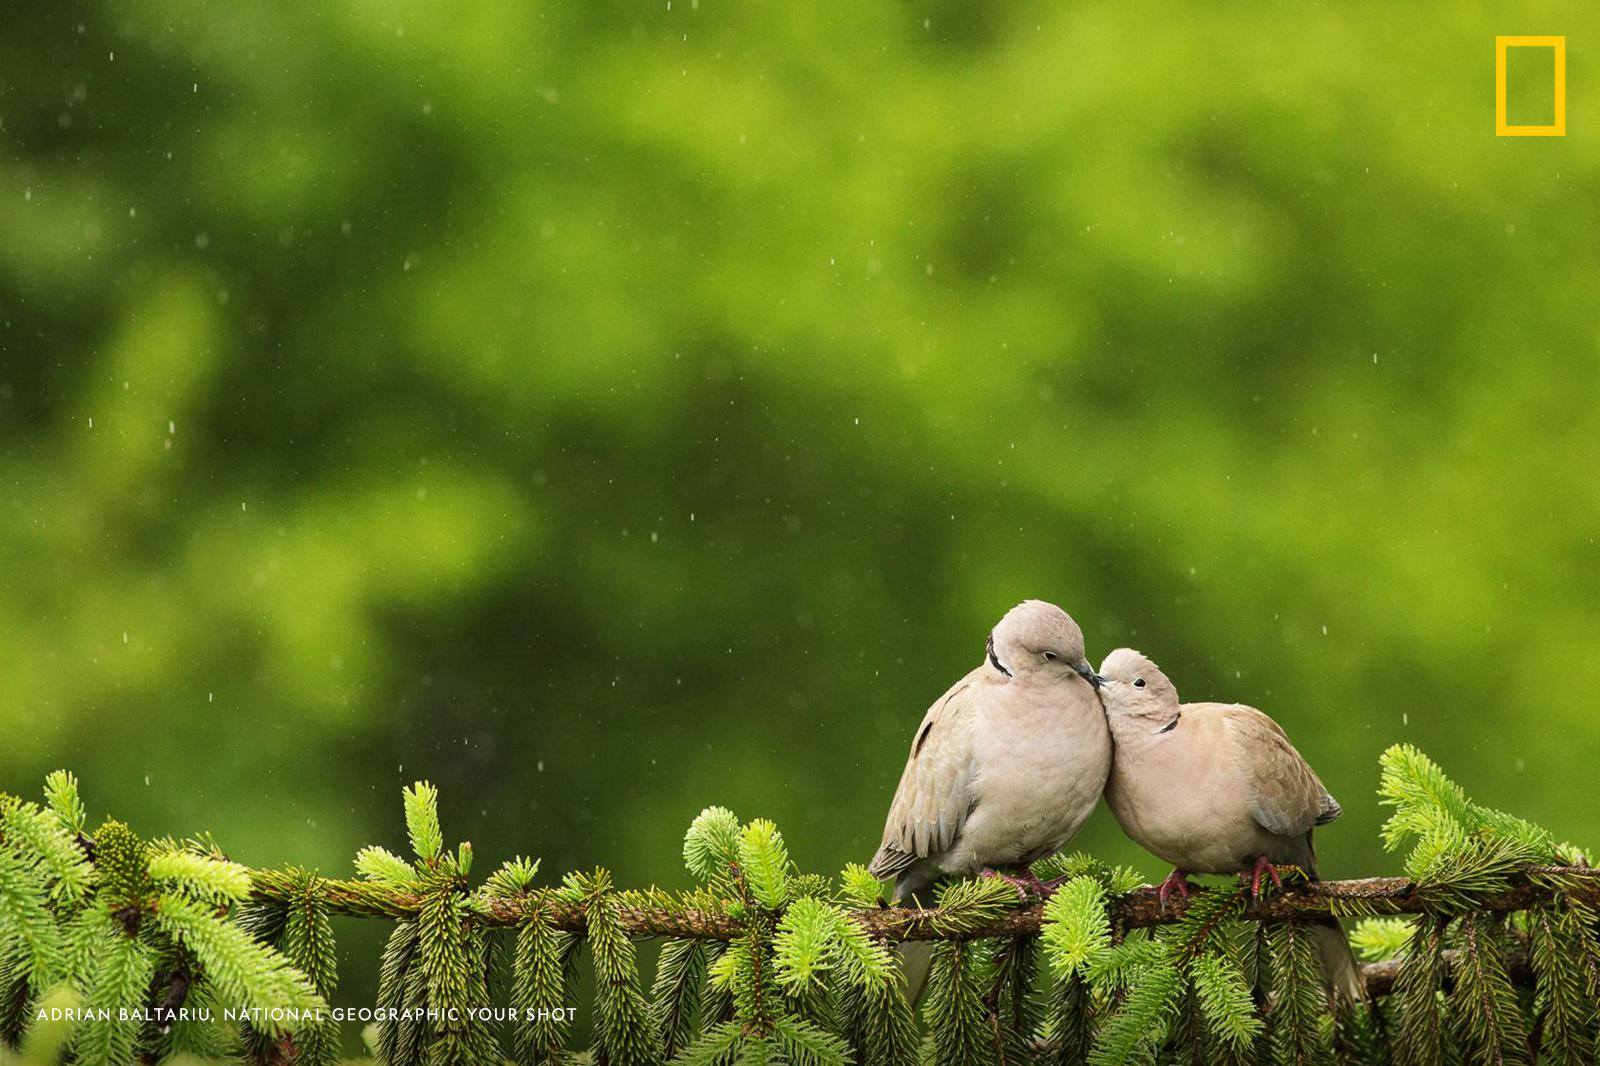 Your Shot Photographer Adrian Baltariu captured this wonderful moment of two doves cuddling on a tree branch in the rain. https://on.natgeo.com/2XxfYEu